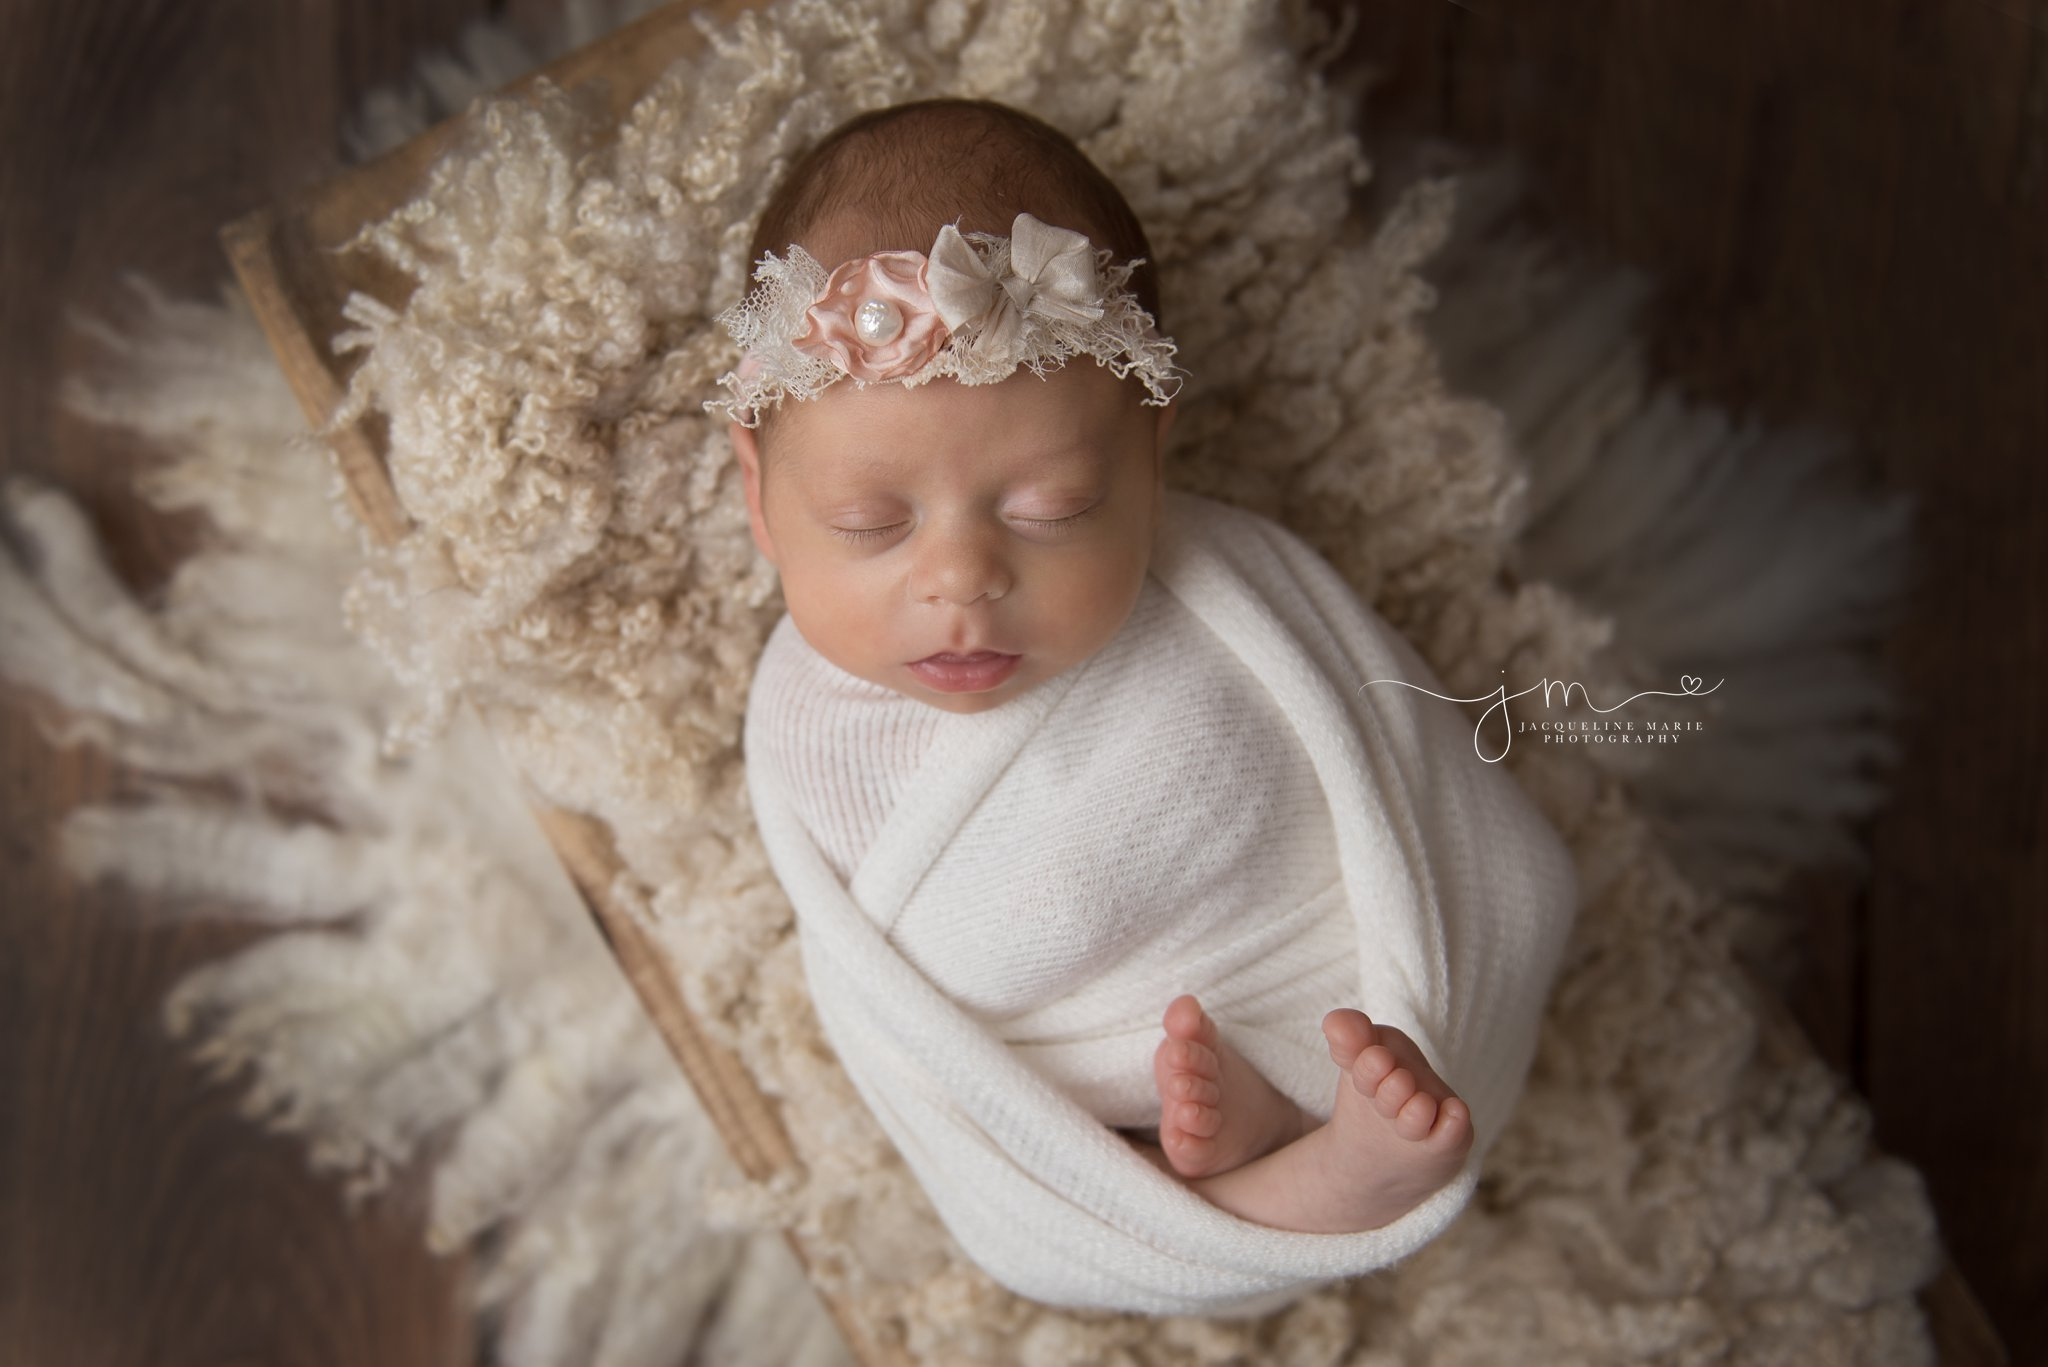 6 week old newborn baby girl wears pink and cream headband while swaddled at jacqueline marie photography studio in columbus ohio